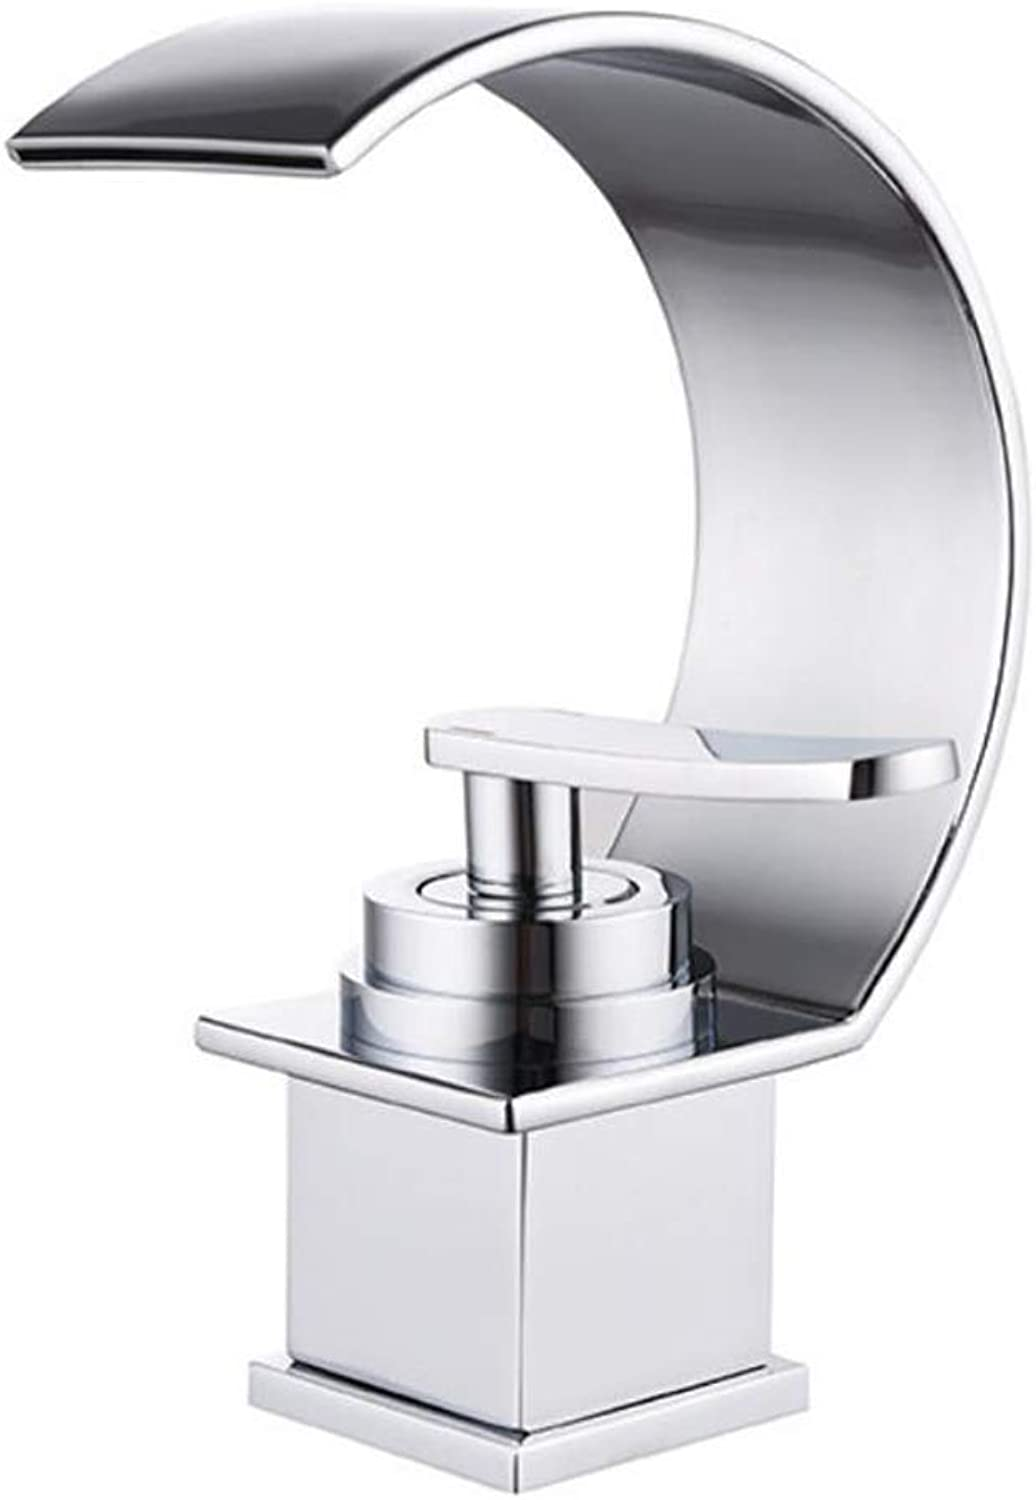 MONFS-Bathroom tap Taps Pure Copper Single Hole redating Kitchen Hot And Cold Sink Sink Faucet Mixing Valve Faucet